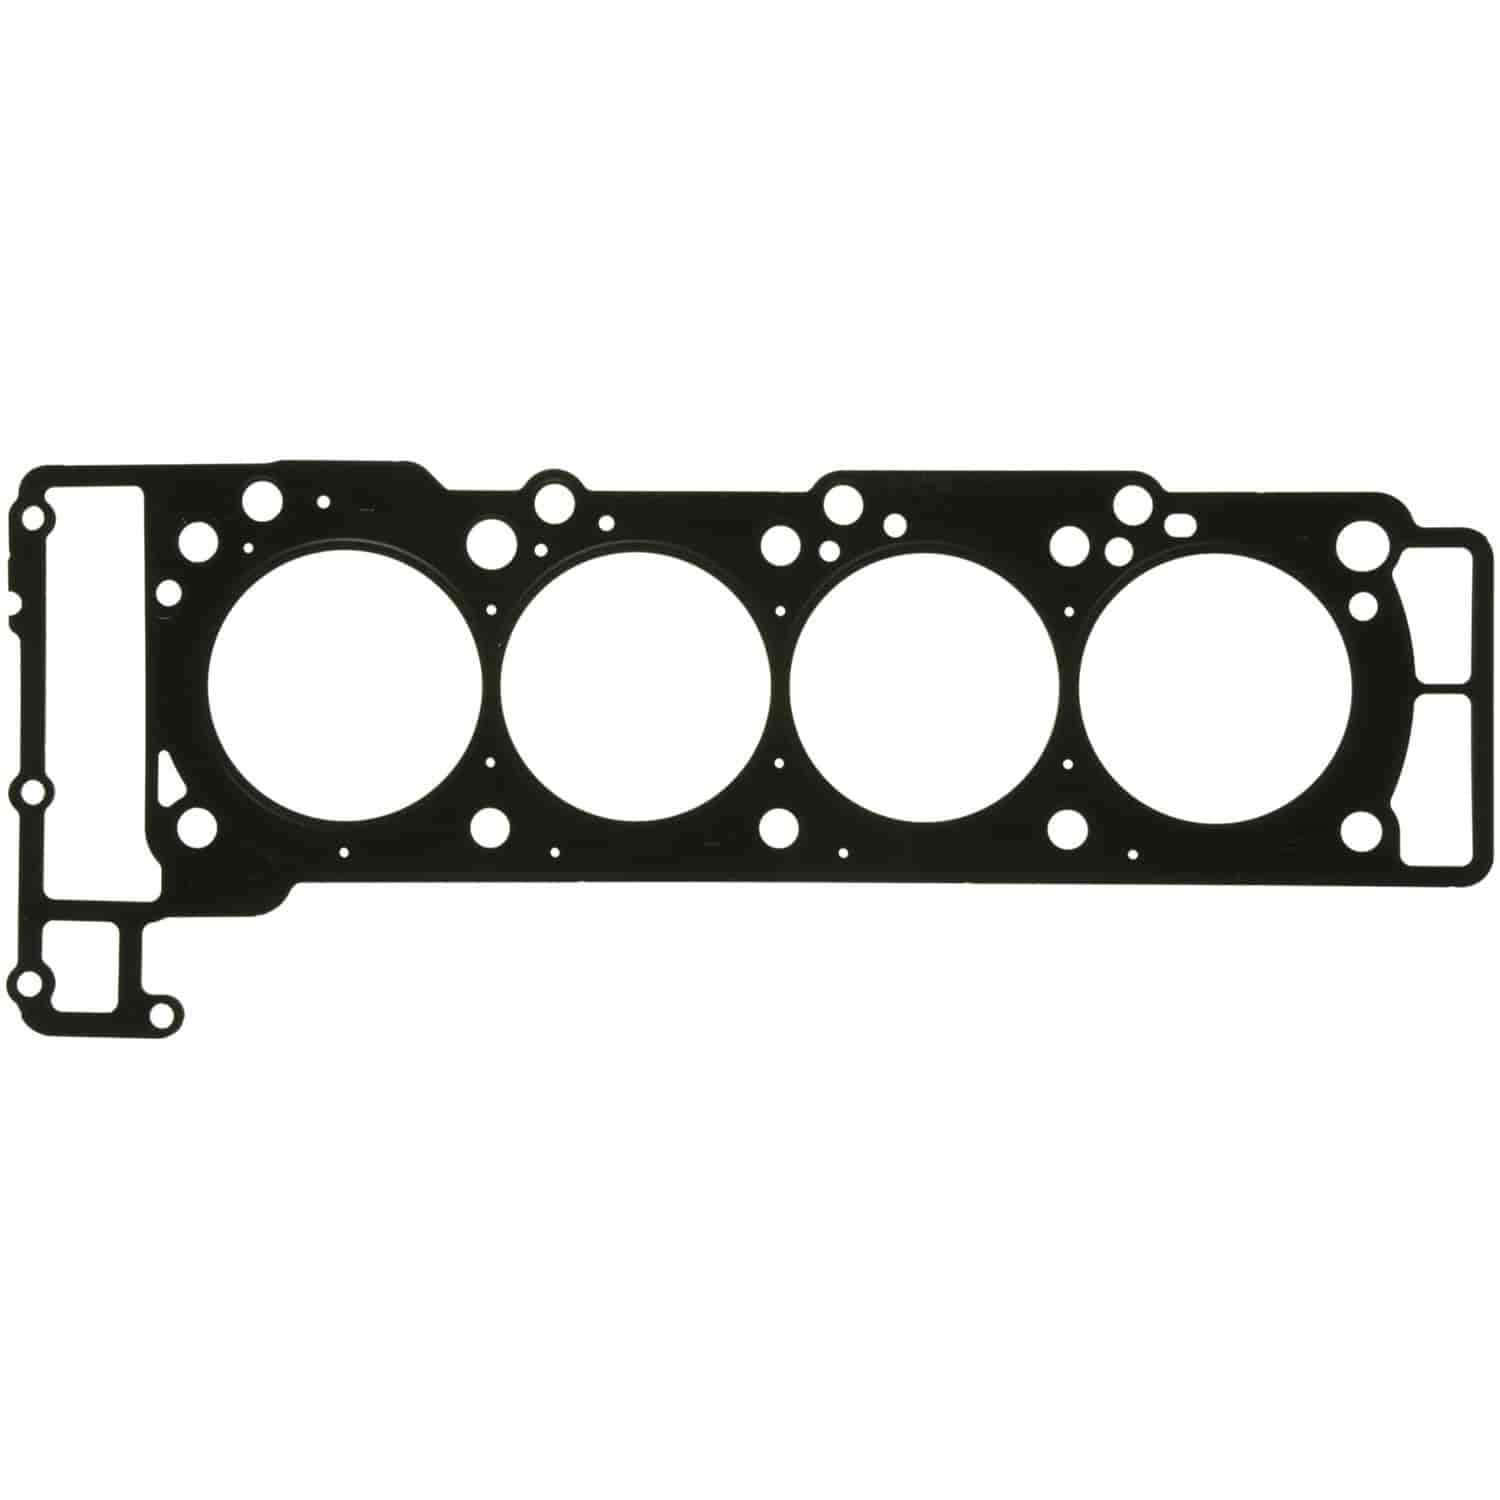 Cylinder Head Cover moreover 1 further 1 together with 1 furthermore 1. on cargo trailer door gasket